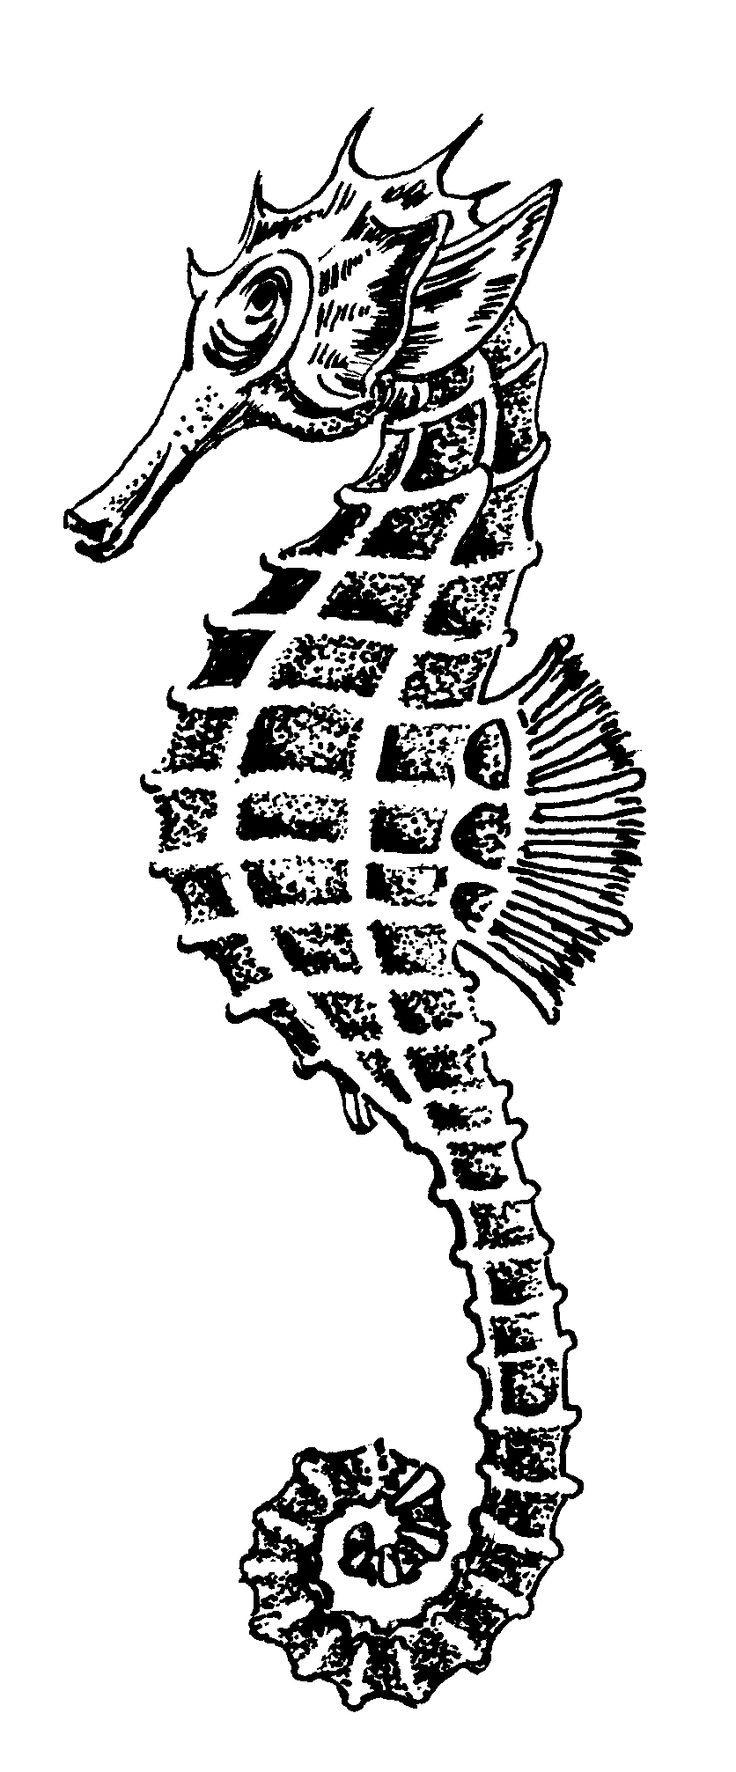 Drawn seahorse Pinterest pin on more) public